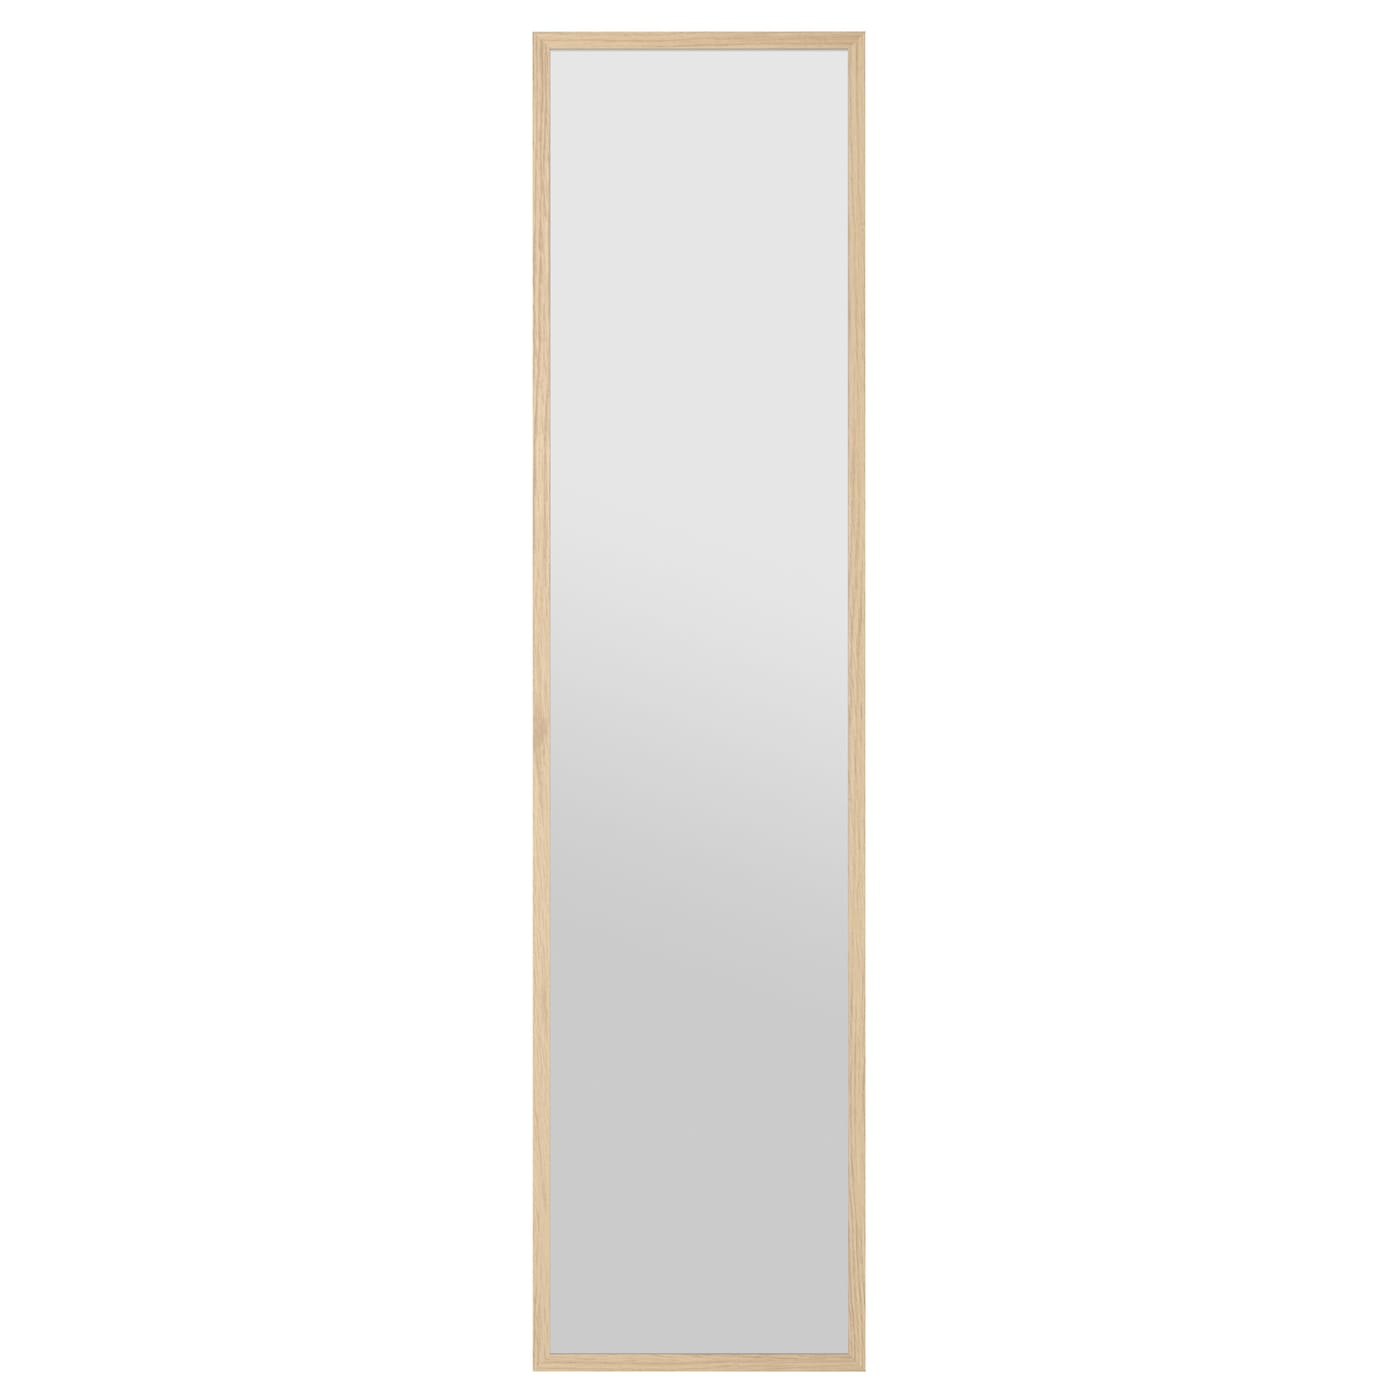 Stave mirror white stained oak effect 40x160 cm ikea for Miroir 90 x 150